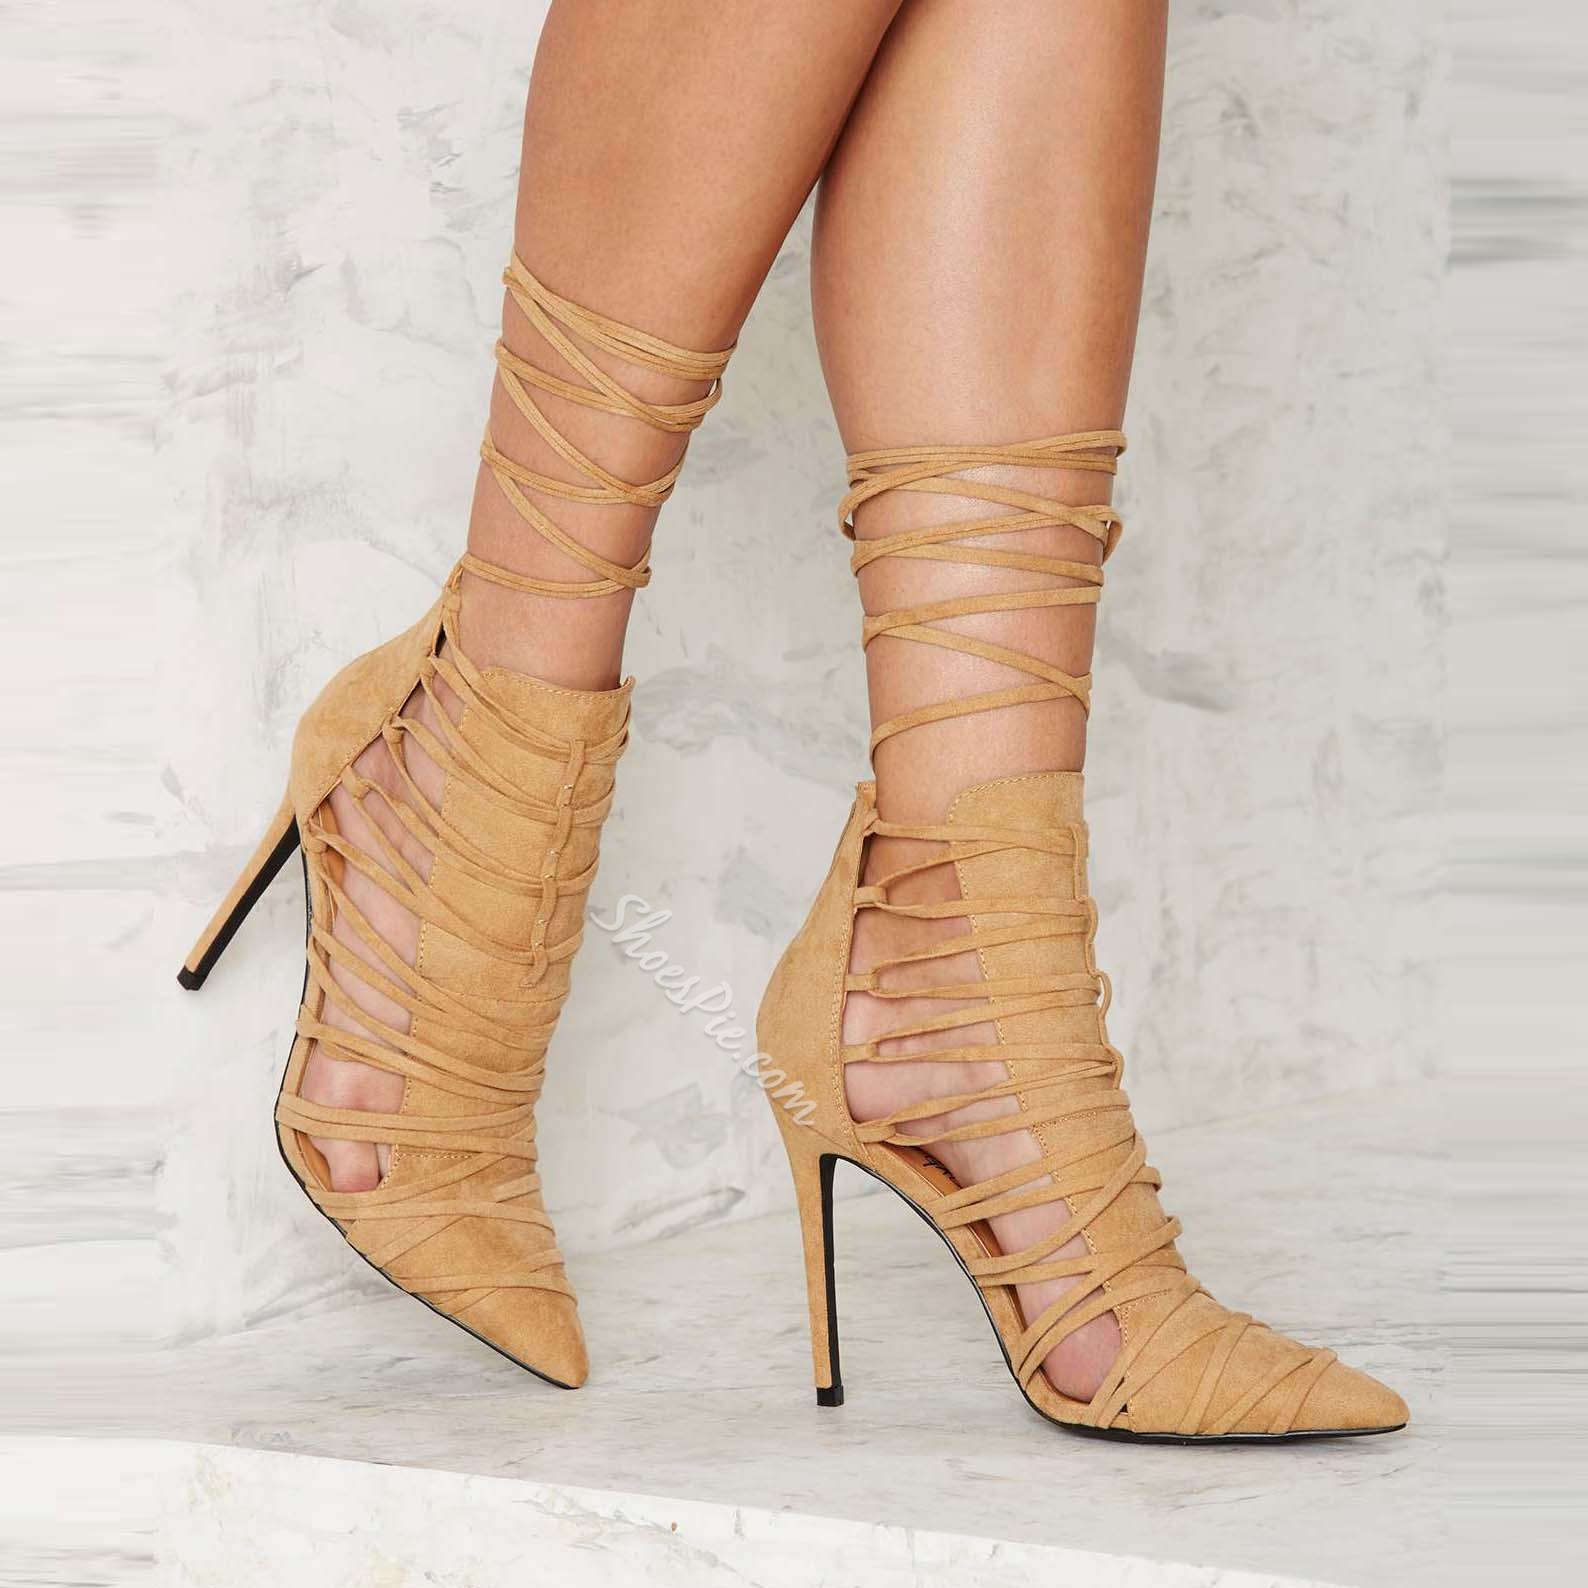 Shoespie Apricot Lace Up Stiletto Heels